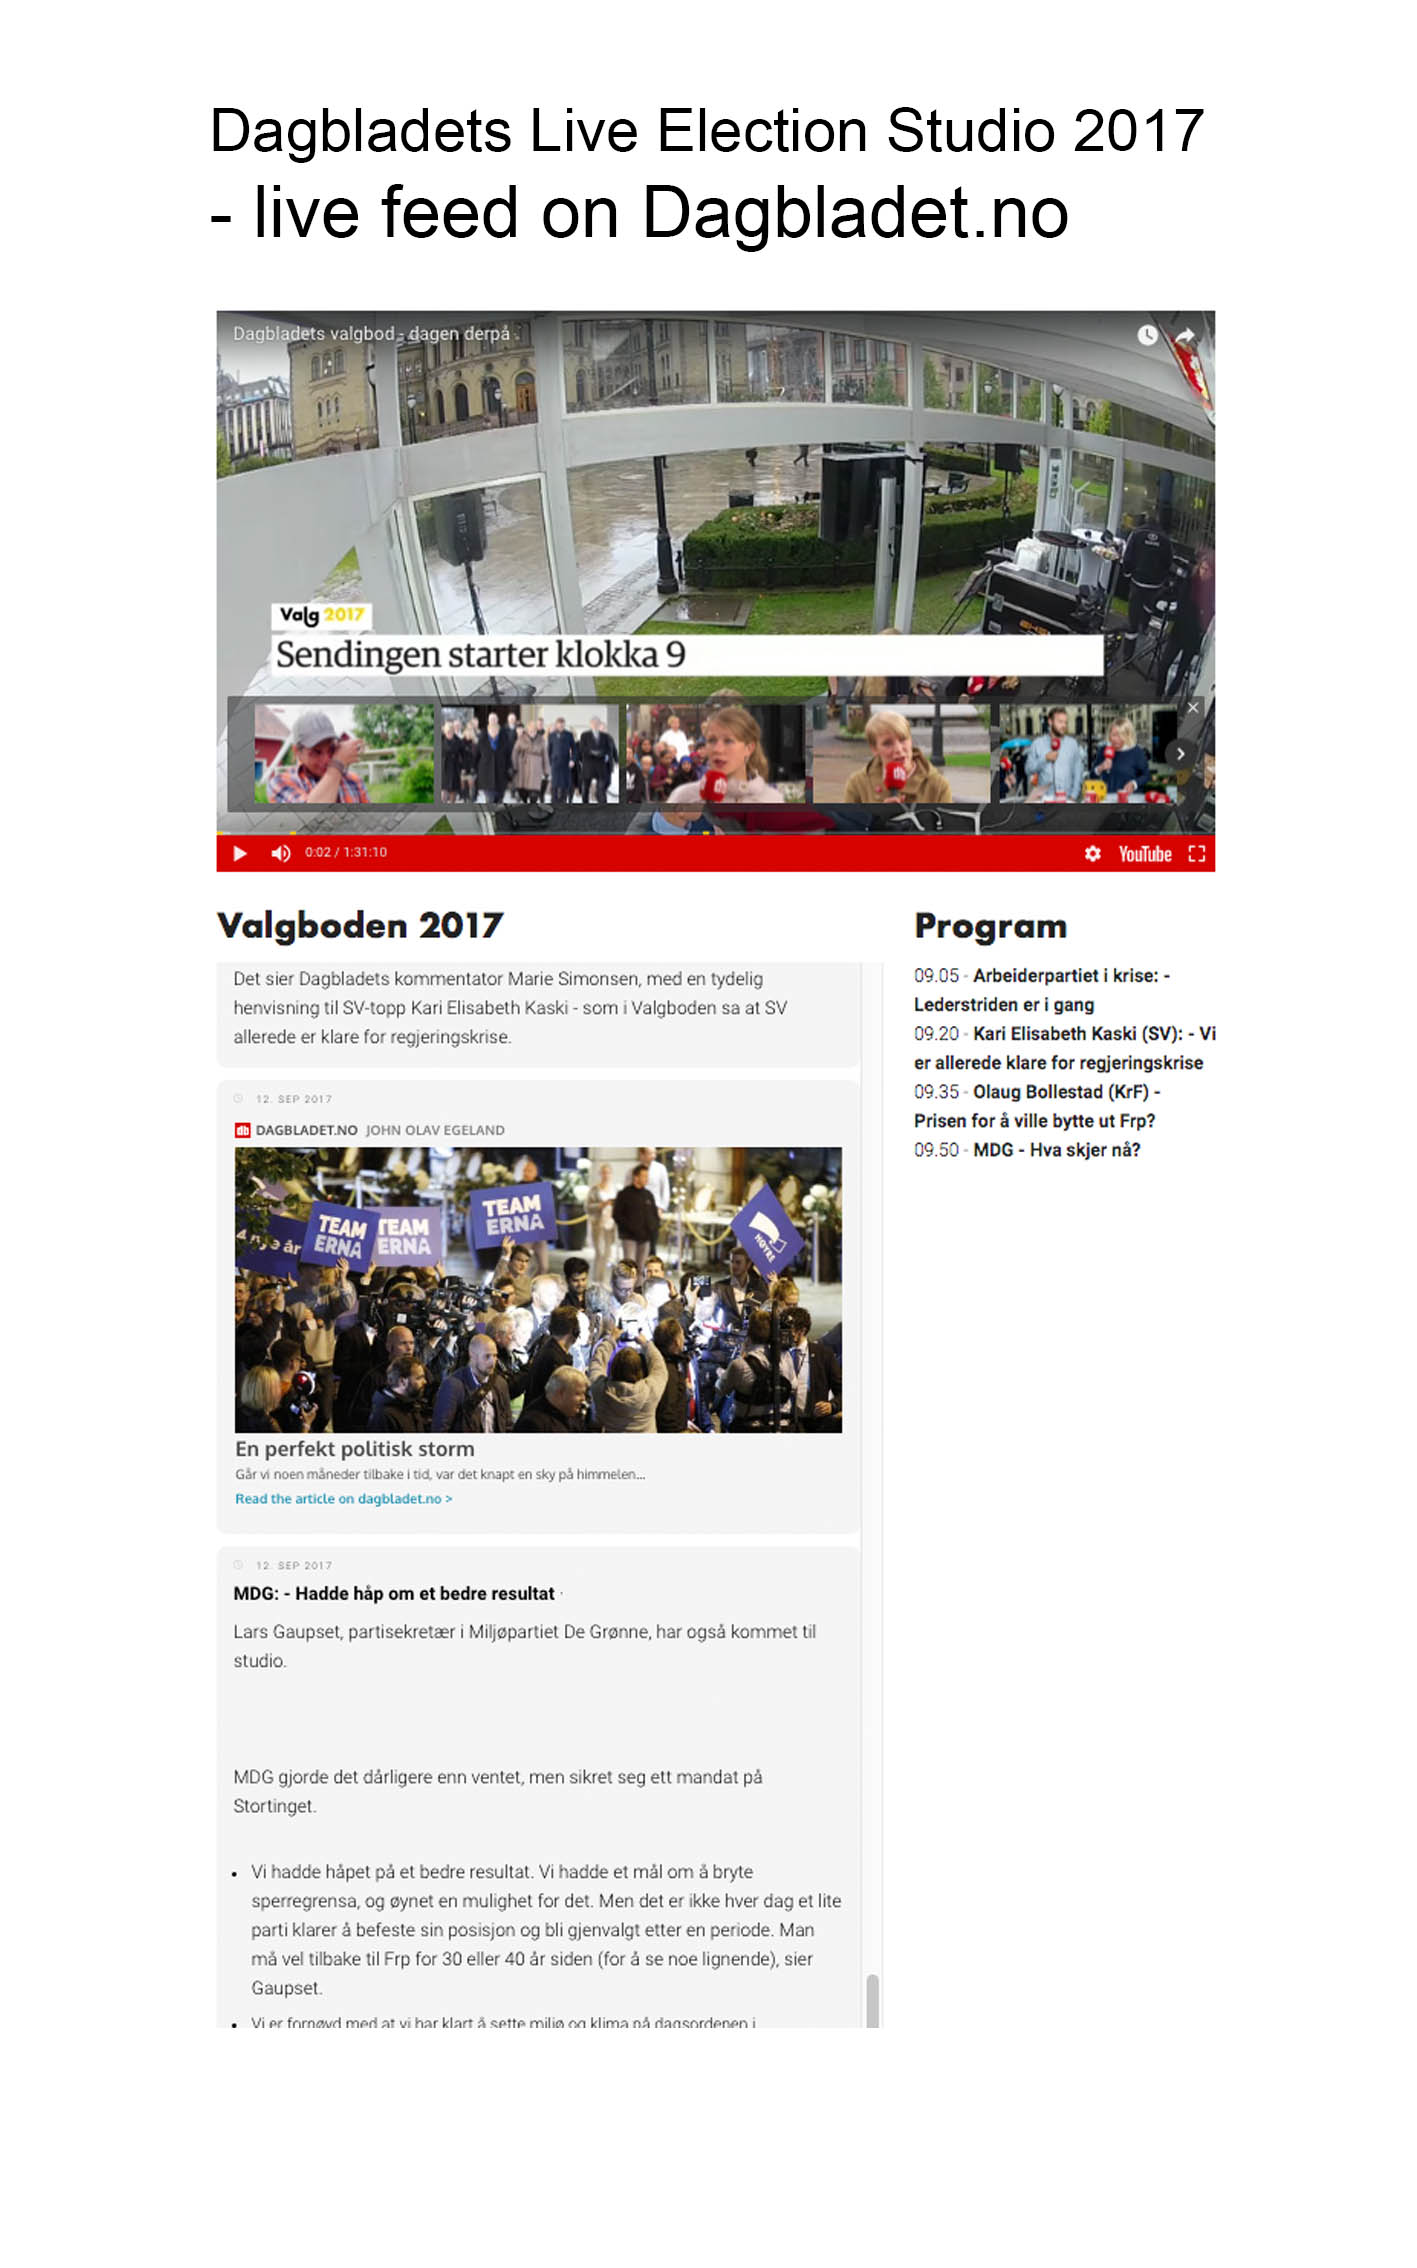 Dagbladets Election Studio 2017